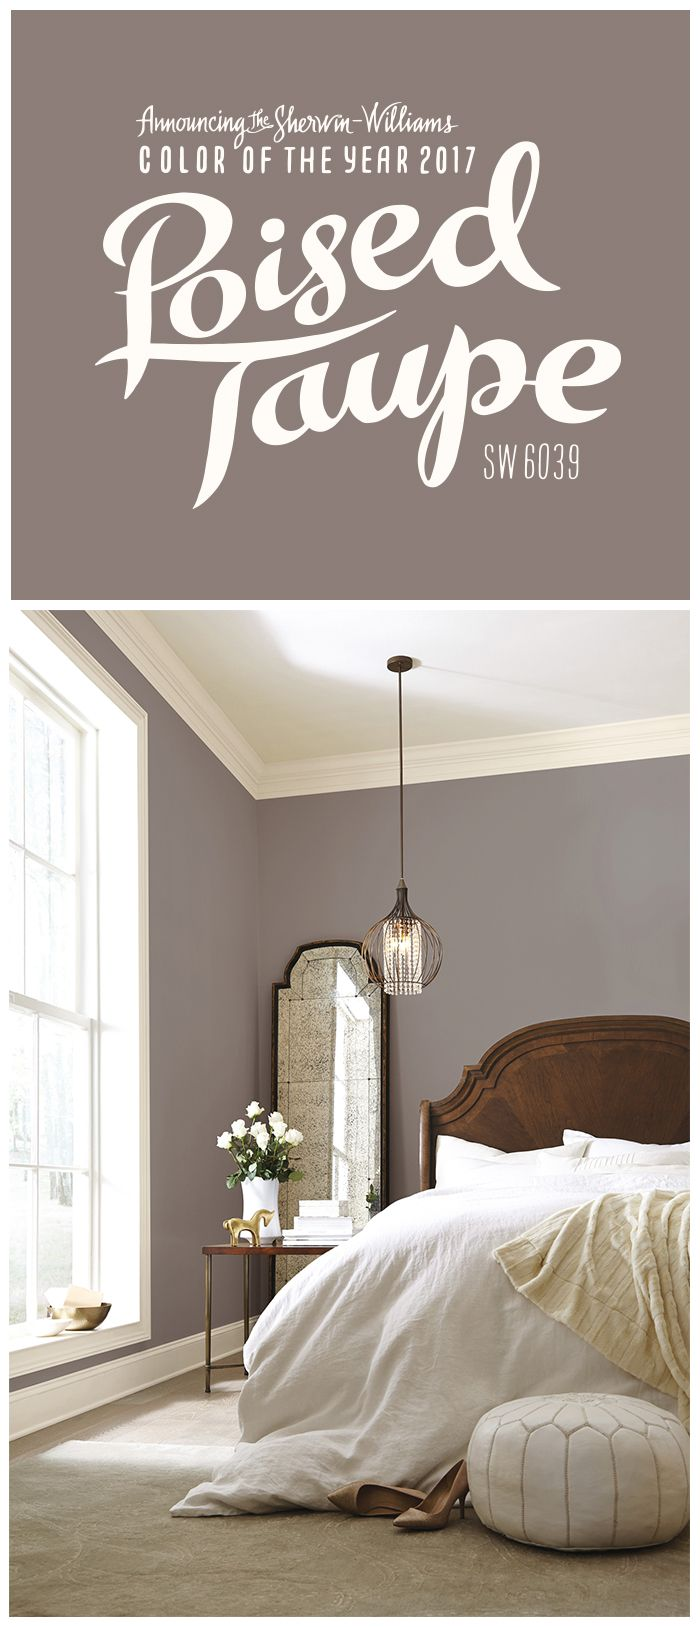 We re thrilled about our 2017 color of the year poised for Indoor paints color ideas